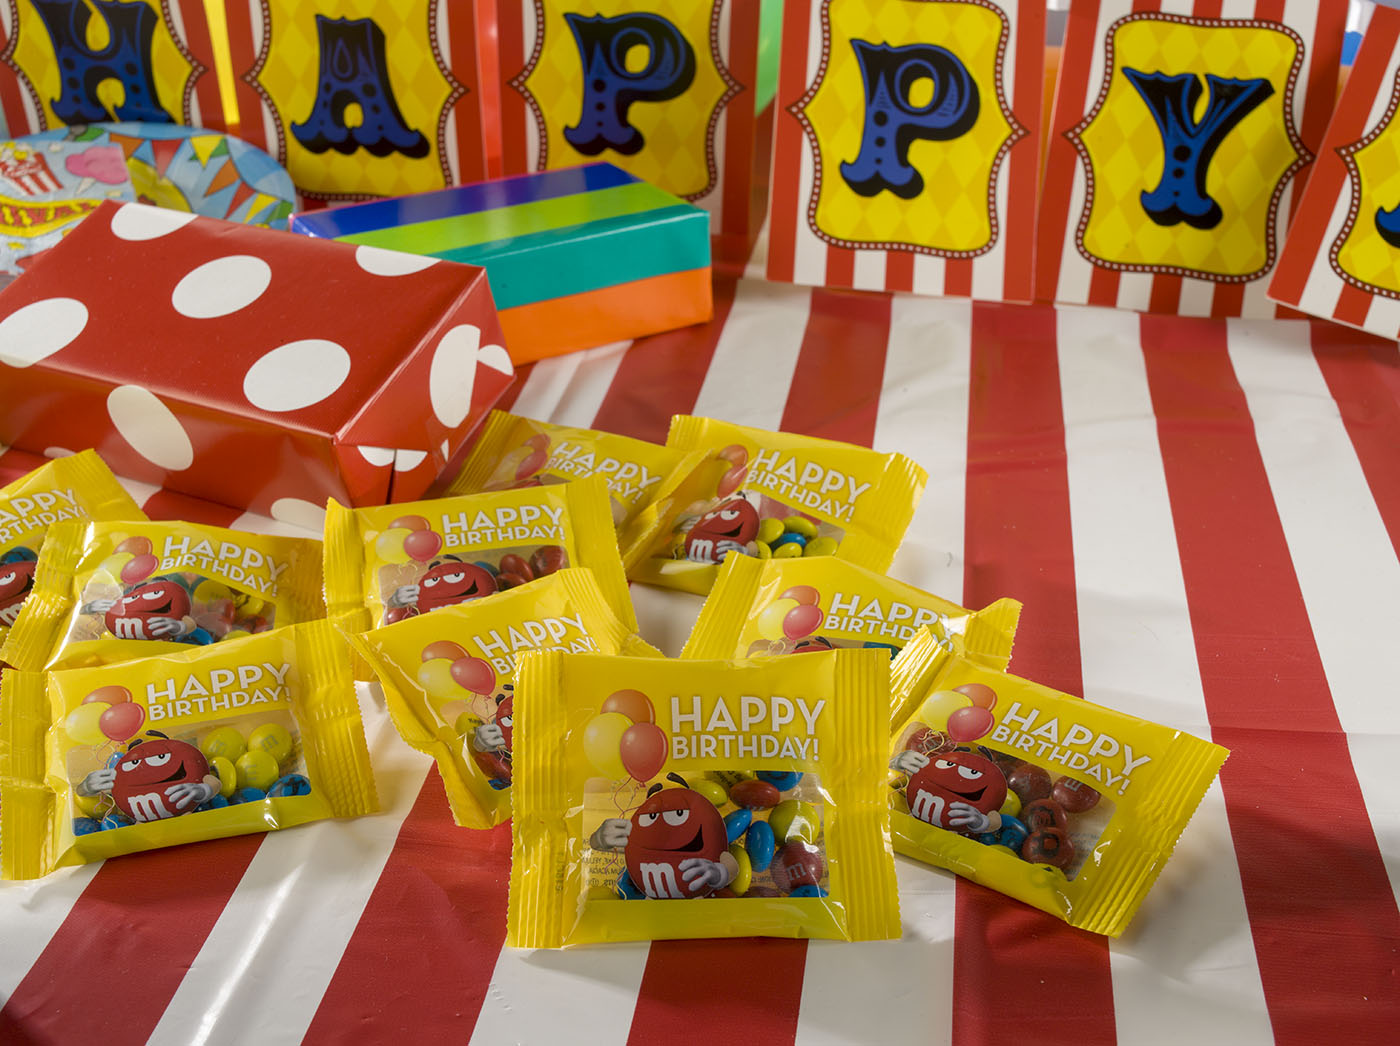 Circus birthday party theme with party favors